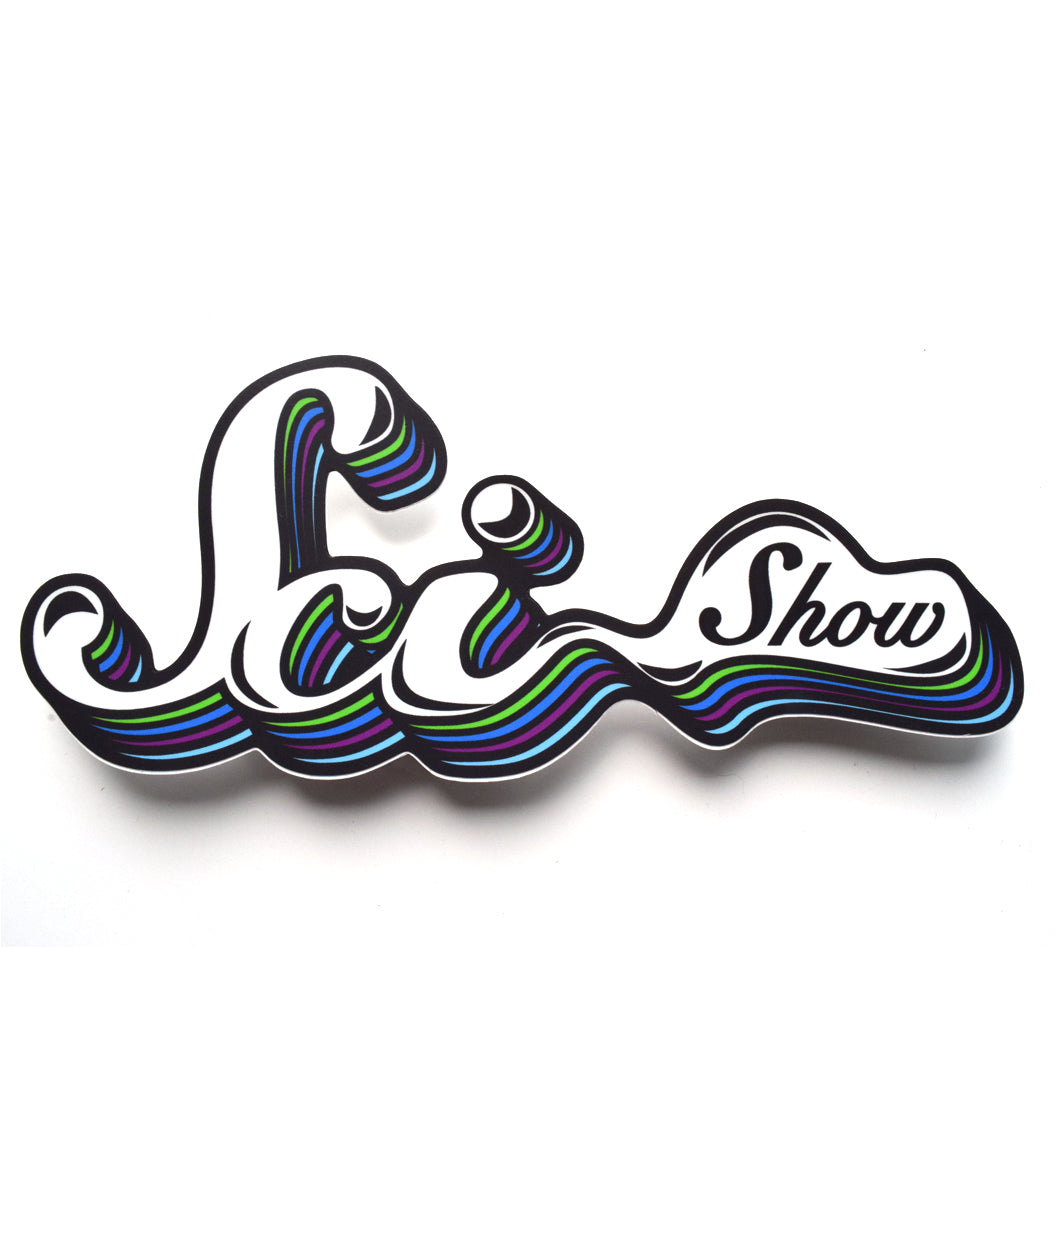 SciShow Colors Vinyl Decal